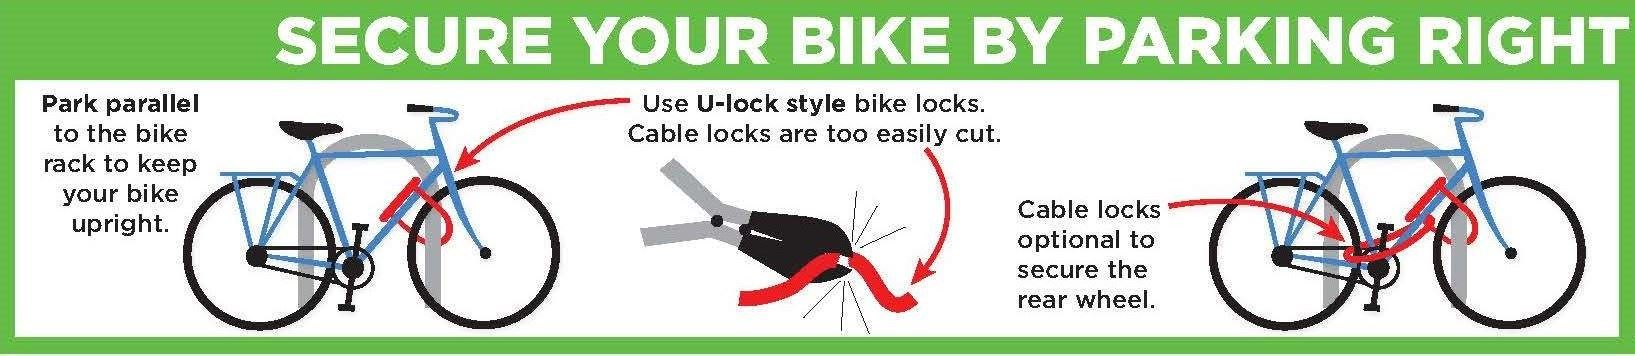 Lock Your Bike Right_RBPS